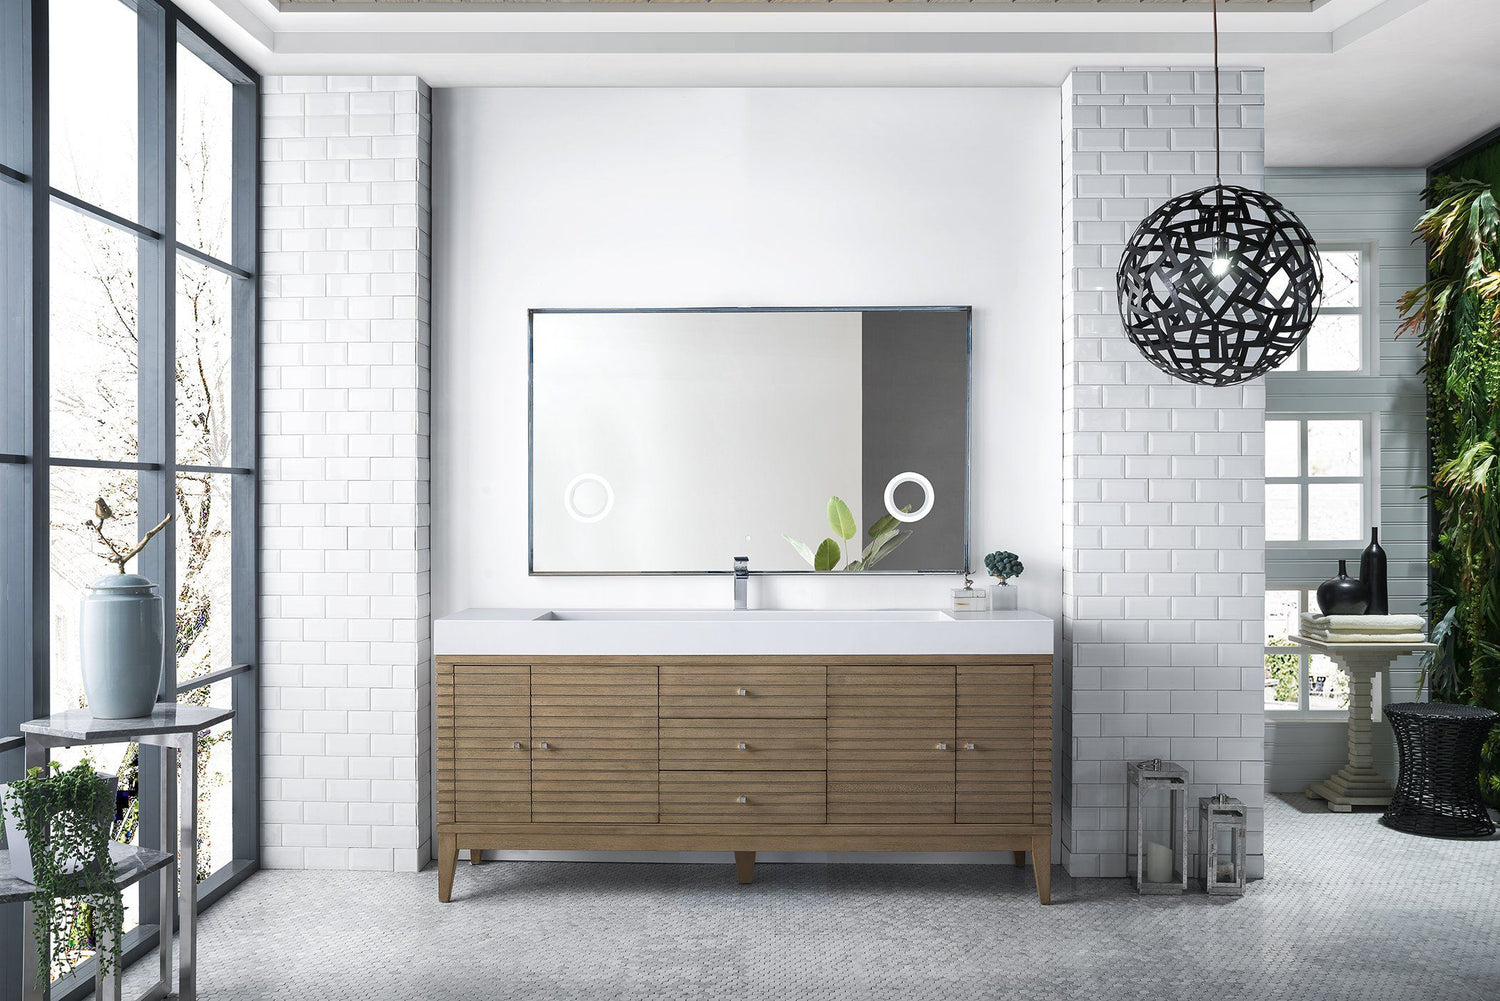 72 Quot Linear Single Bathroom Vanity White Washed Walnut